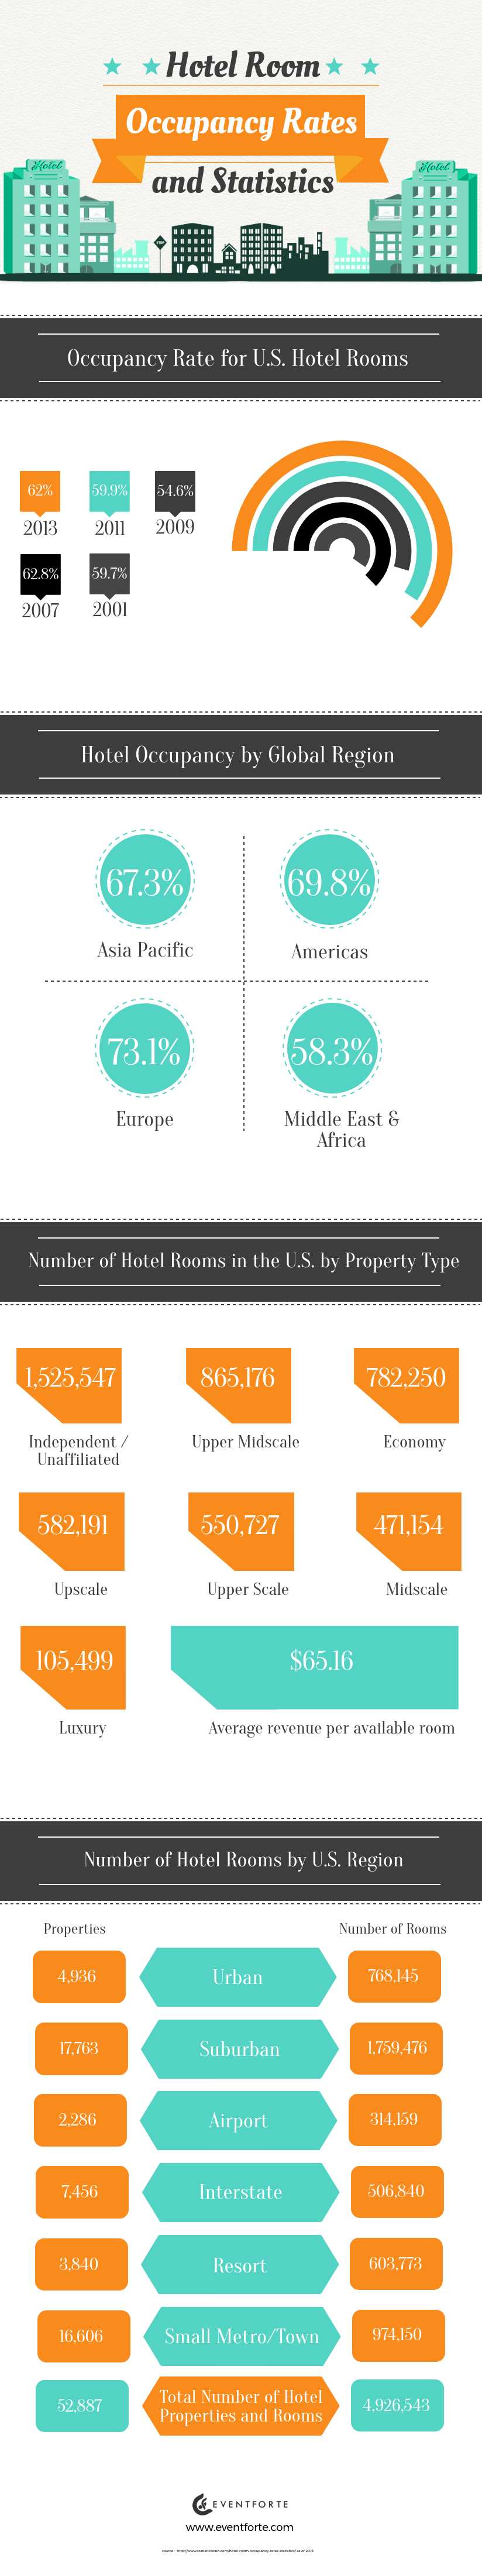 Hotel Room Occupancy Rates and Statistics